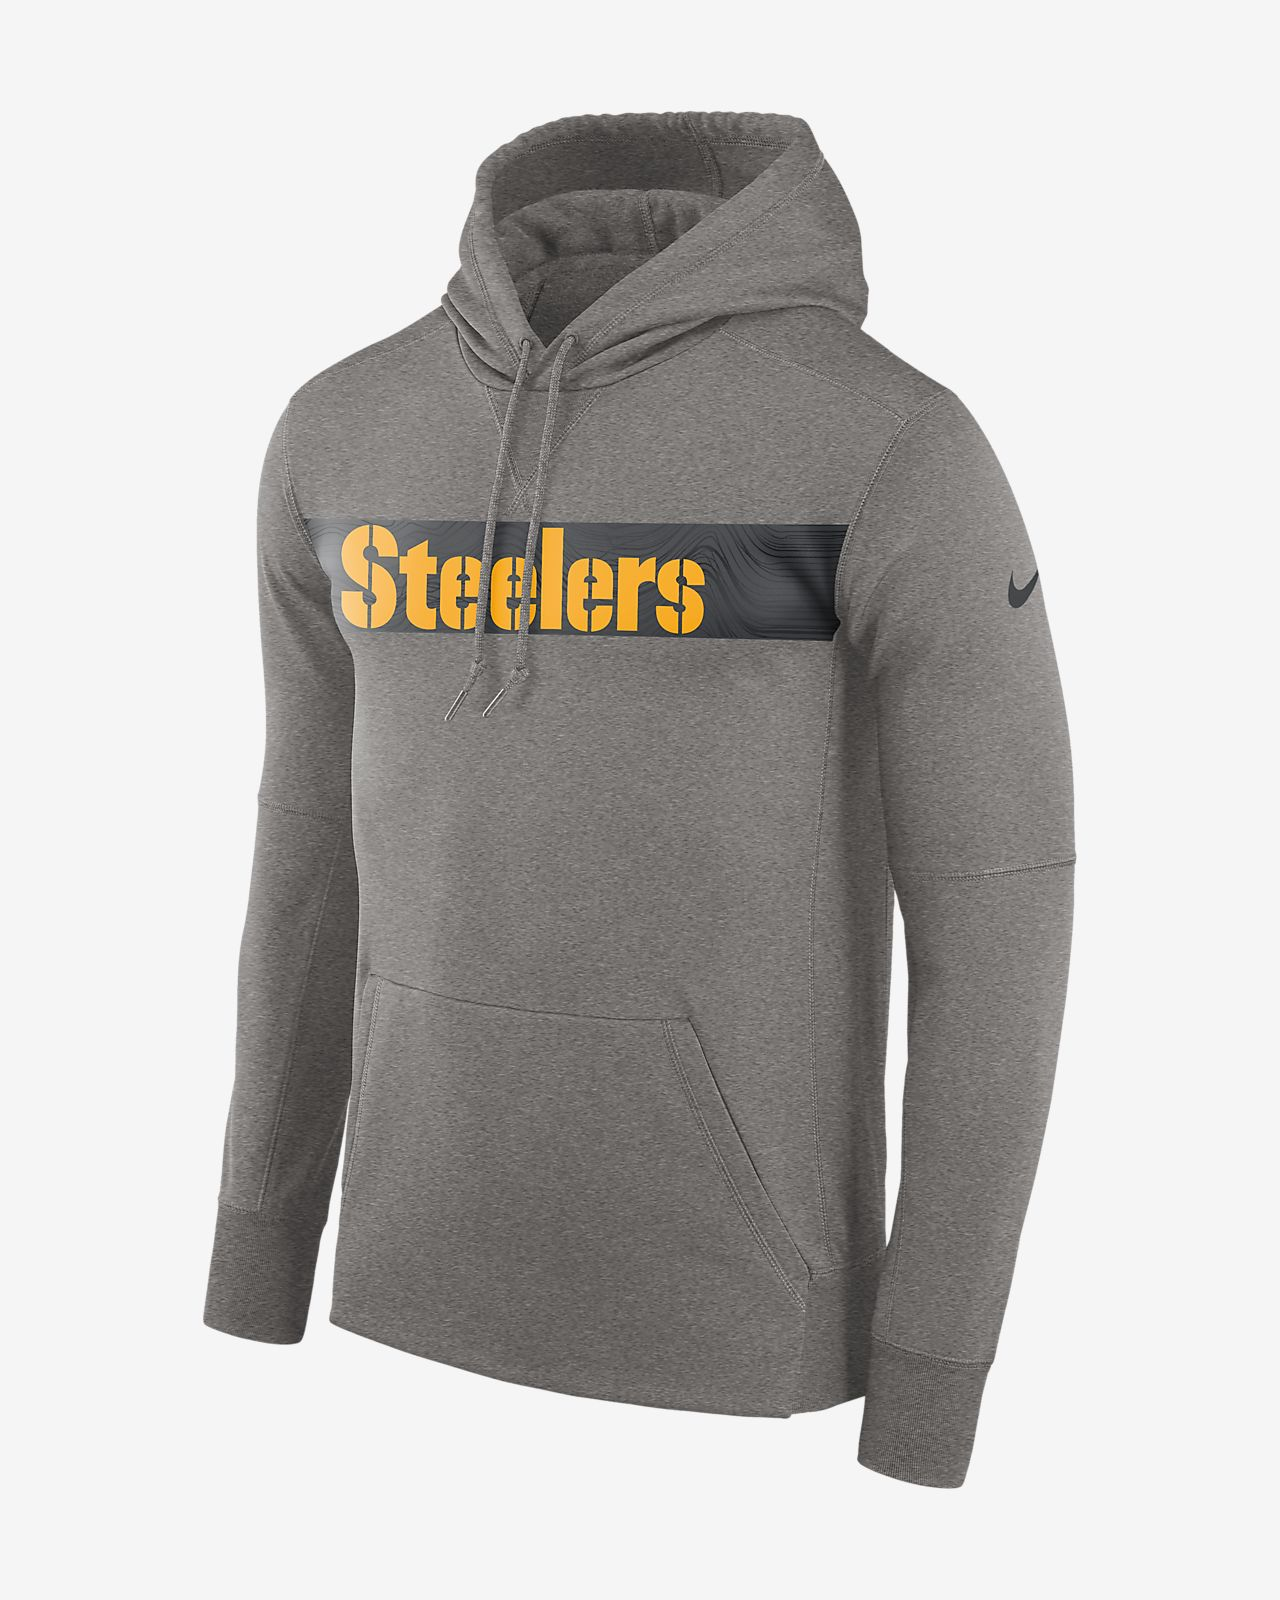 online store 63dc8 f1650 Nike Dri-FIT Therma (NFL Steelers) Men's Pullover Hoodie